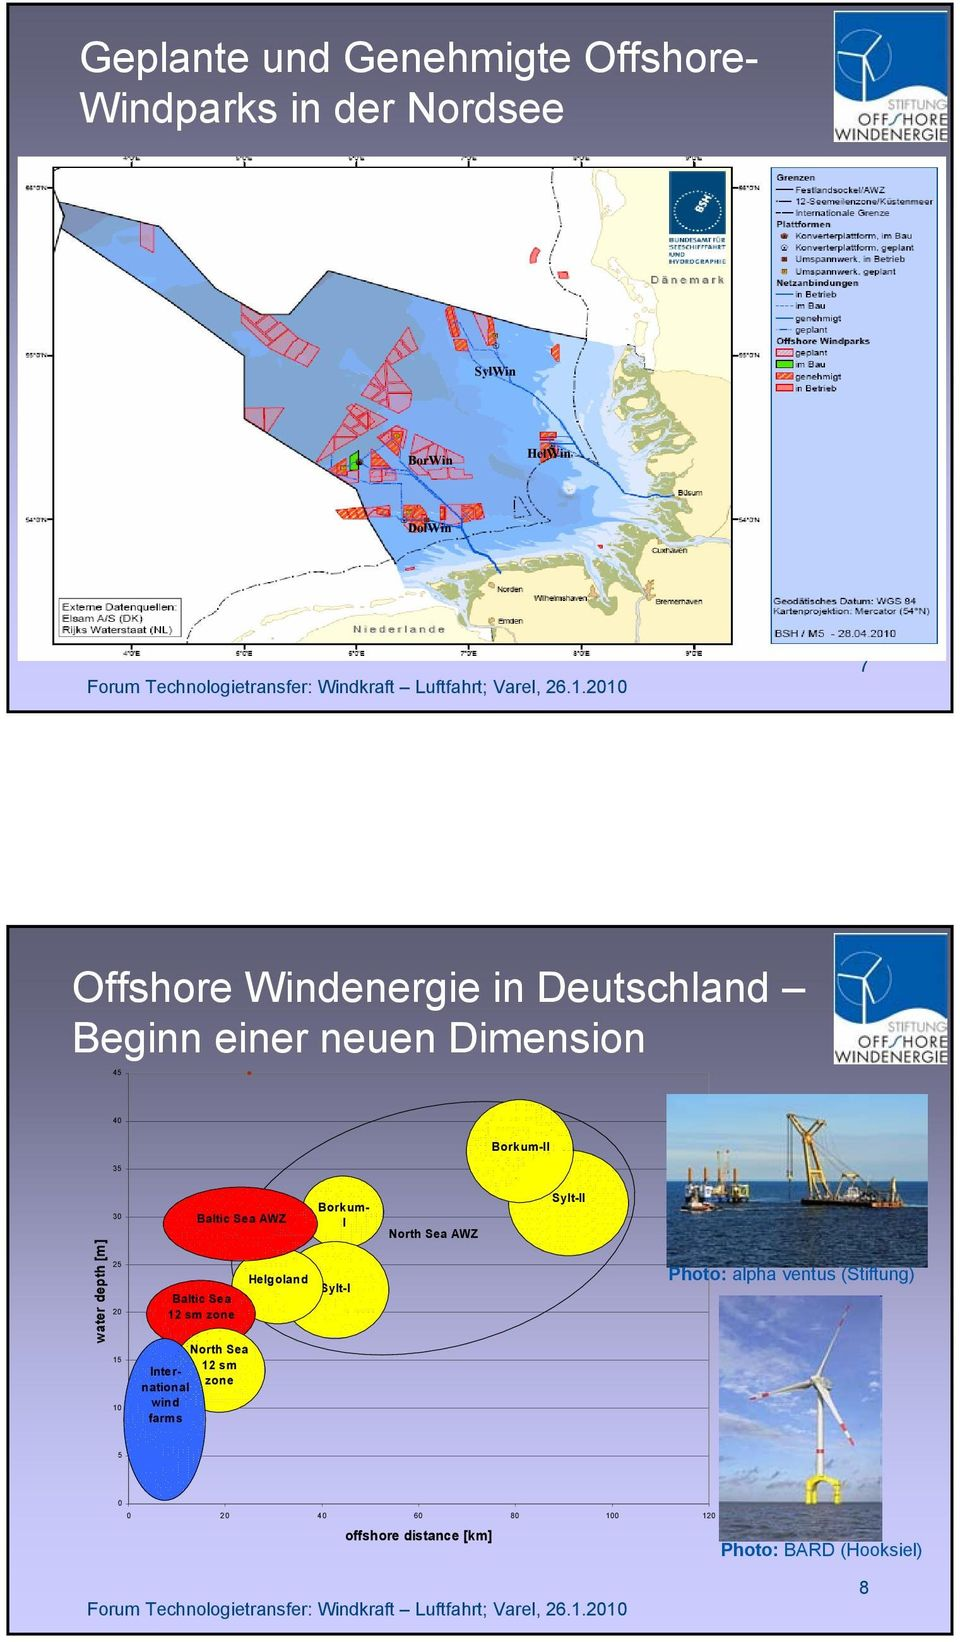 Helgoland Baltic Sea 12 sm zone North Sea 12 sm International zone wind farms Borkum- I Sylt-I North Sea AWZ